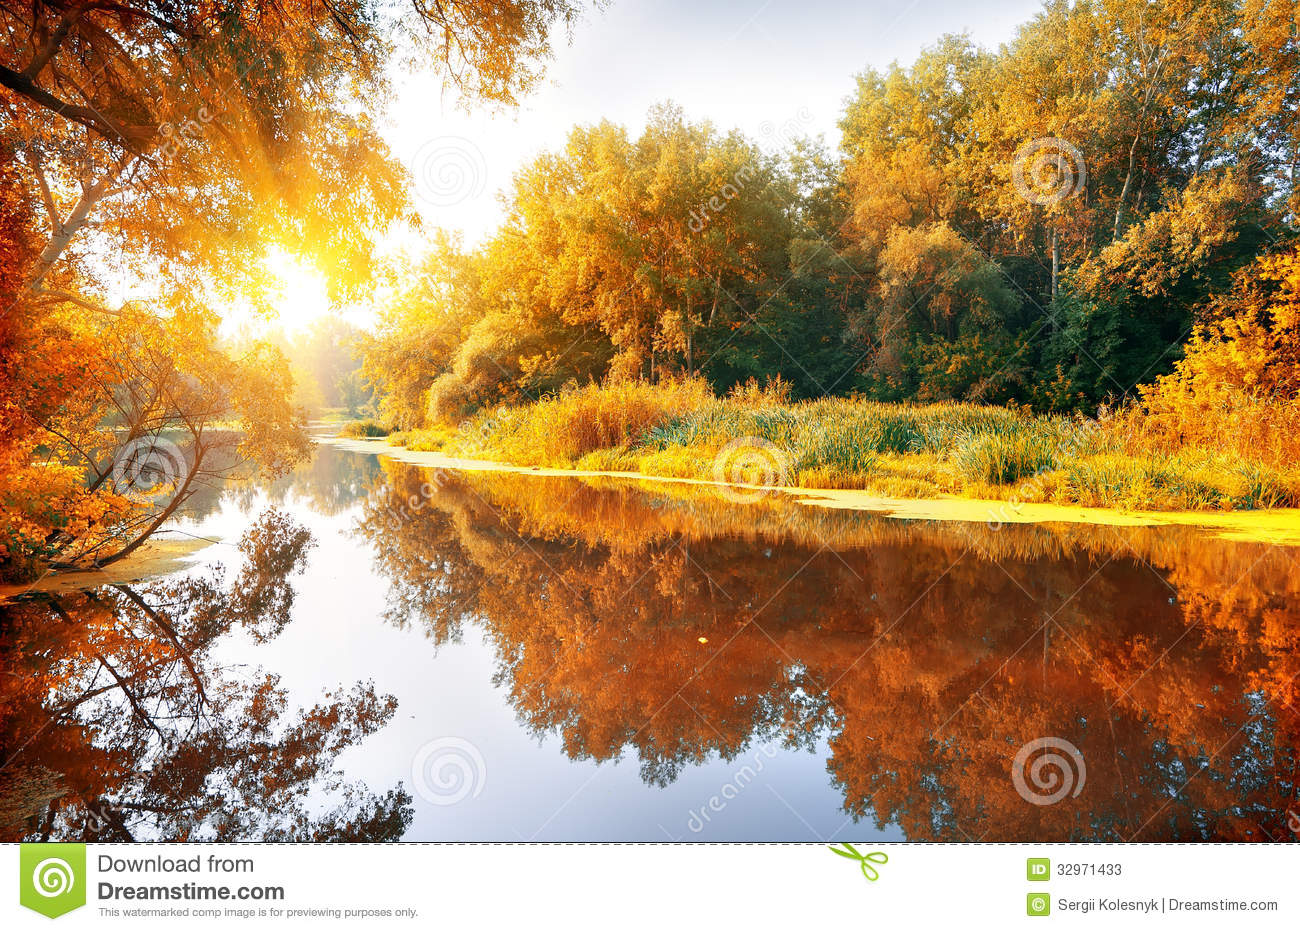 Horses In The Fall Wallpaper River In A Delightful Autumn Forest Stock Photos Image